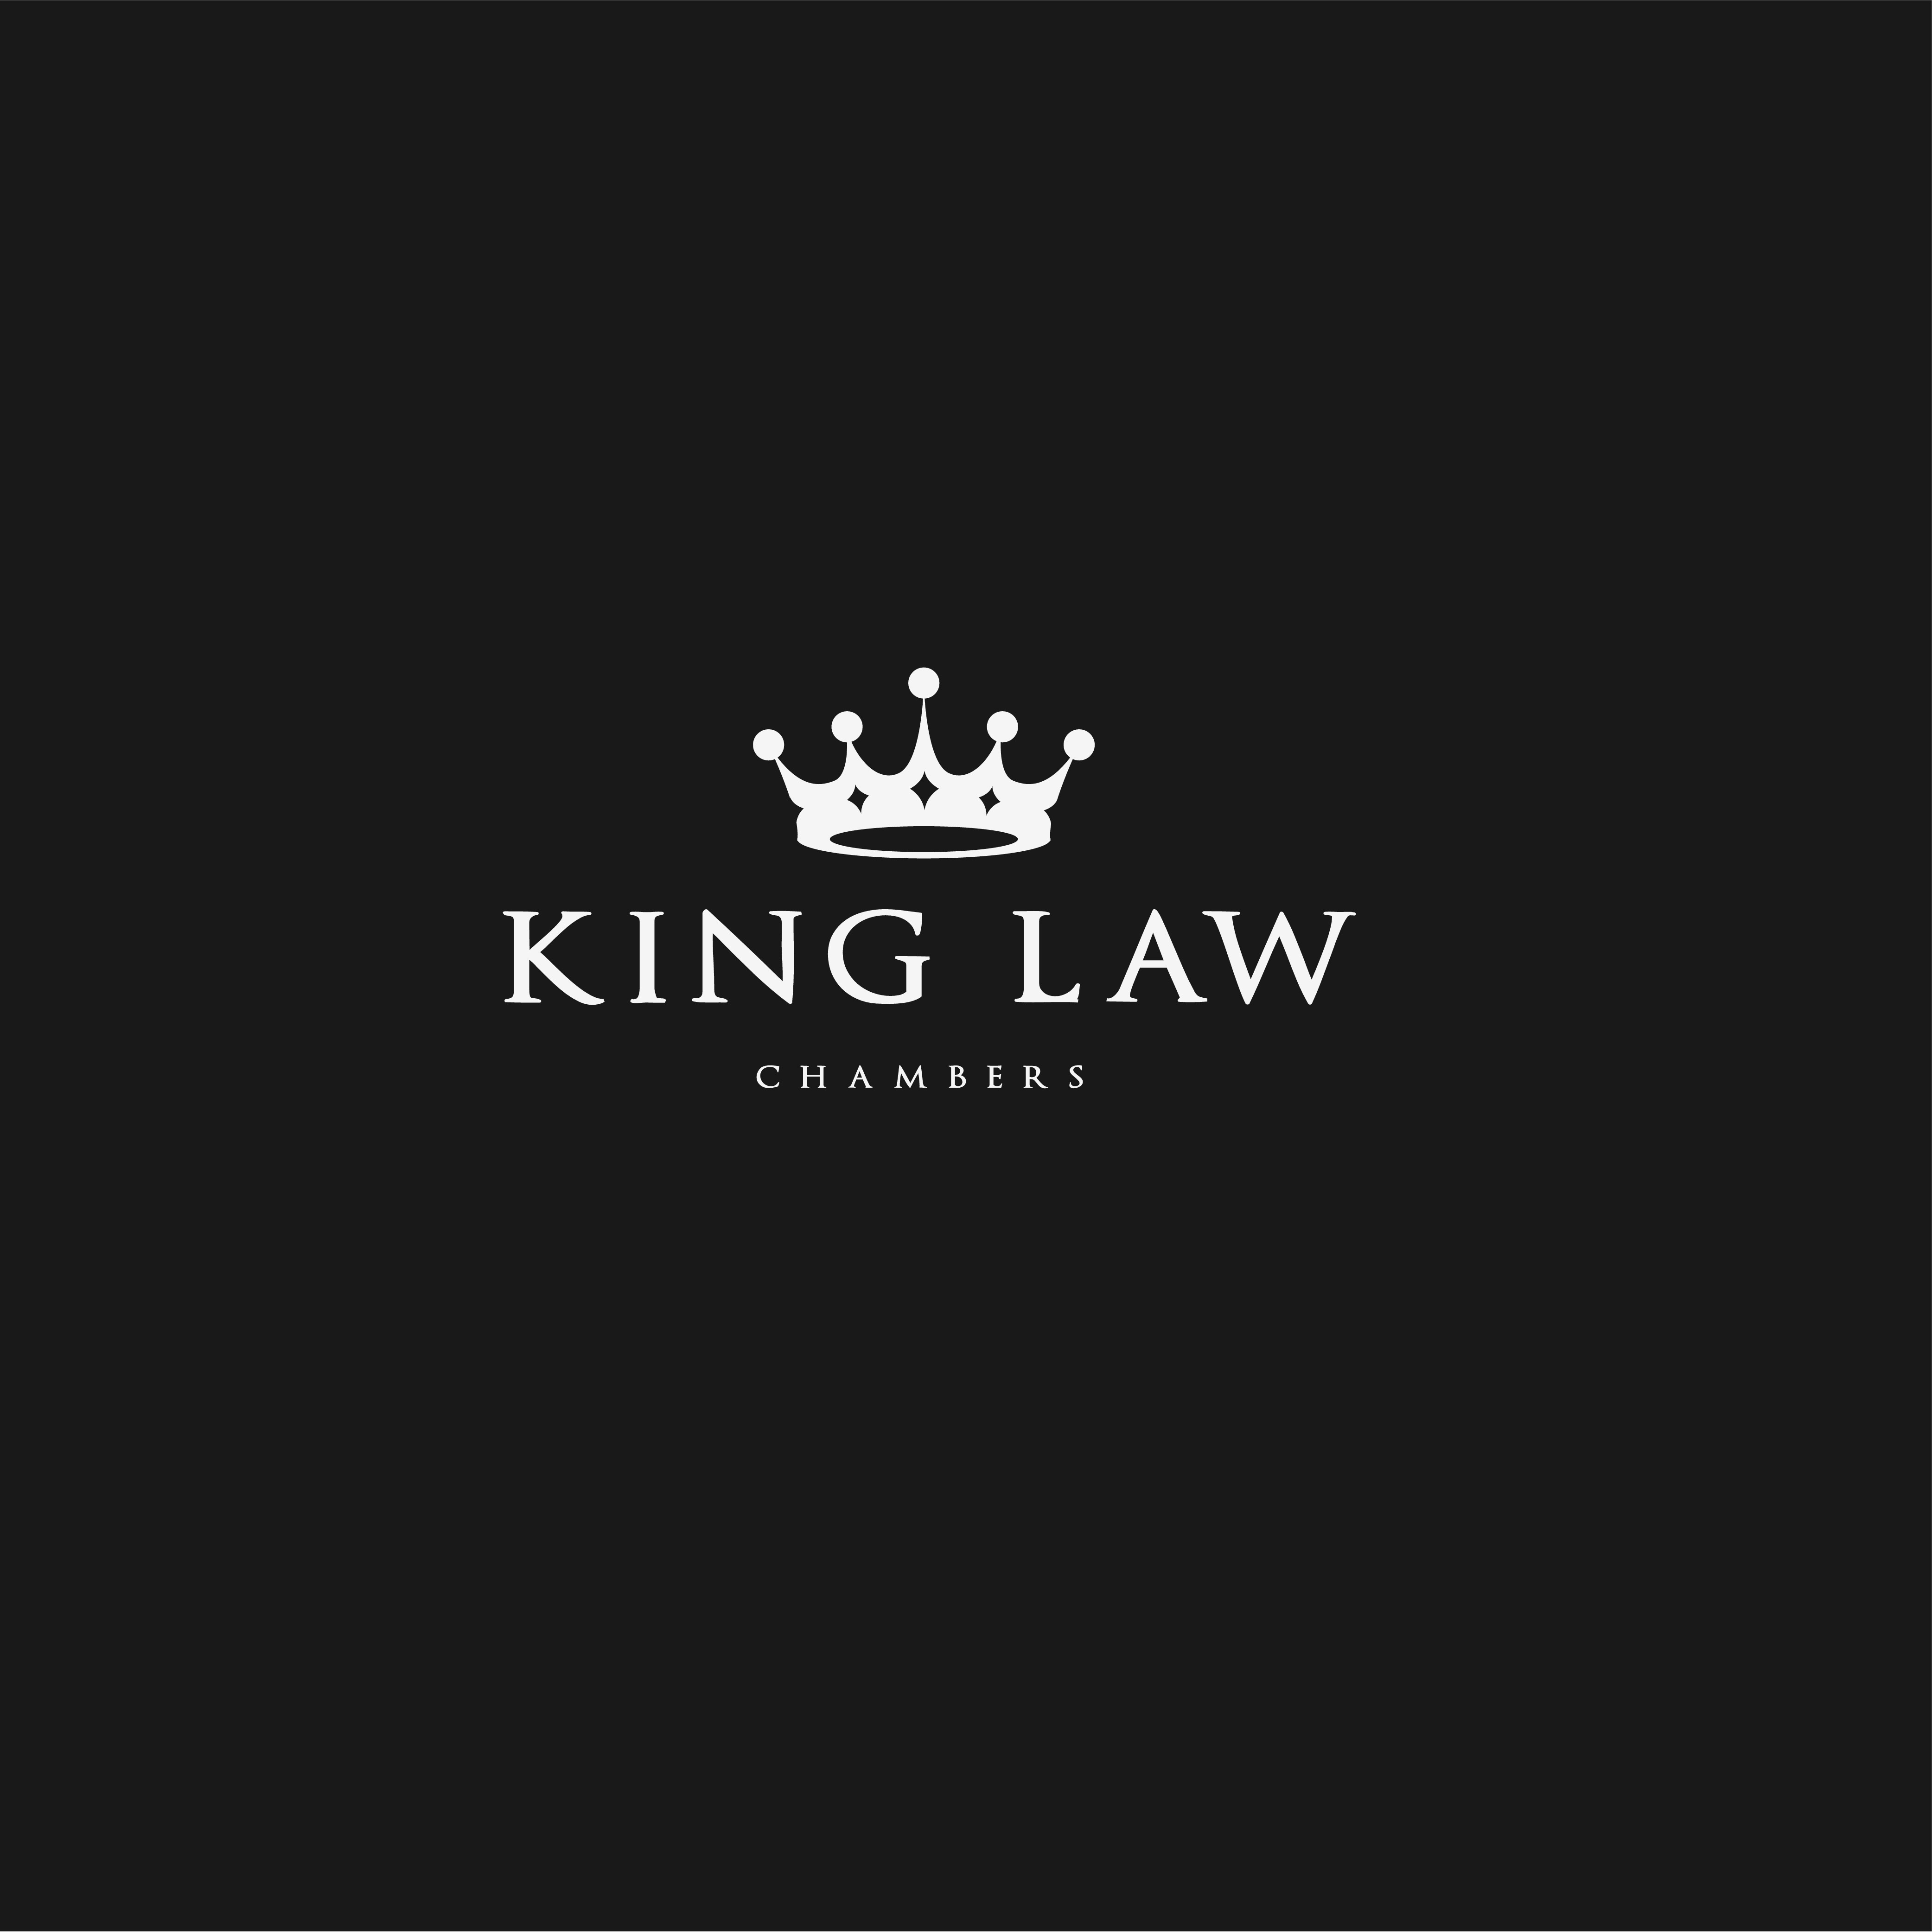 Create the logo and brand for the new way to practice law in 2015.